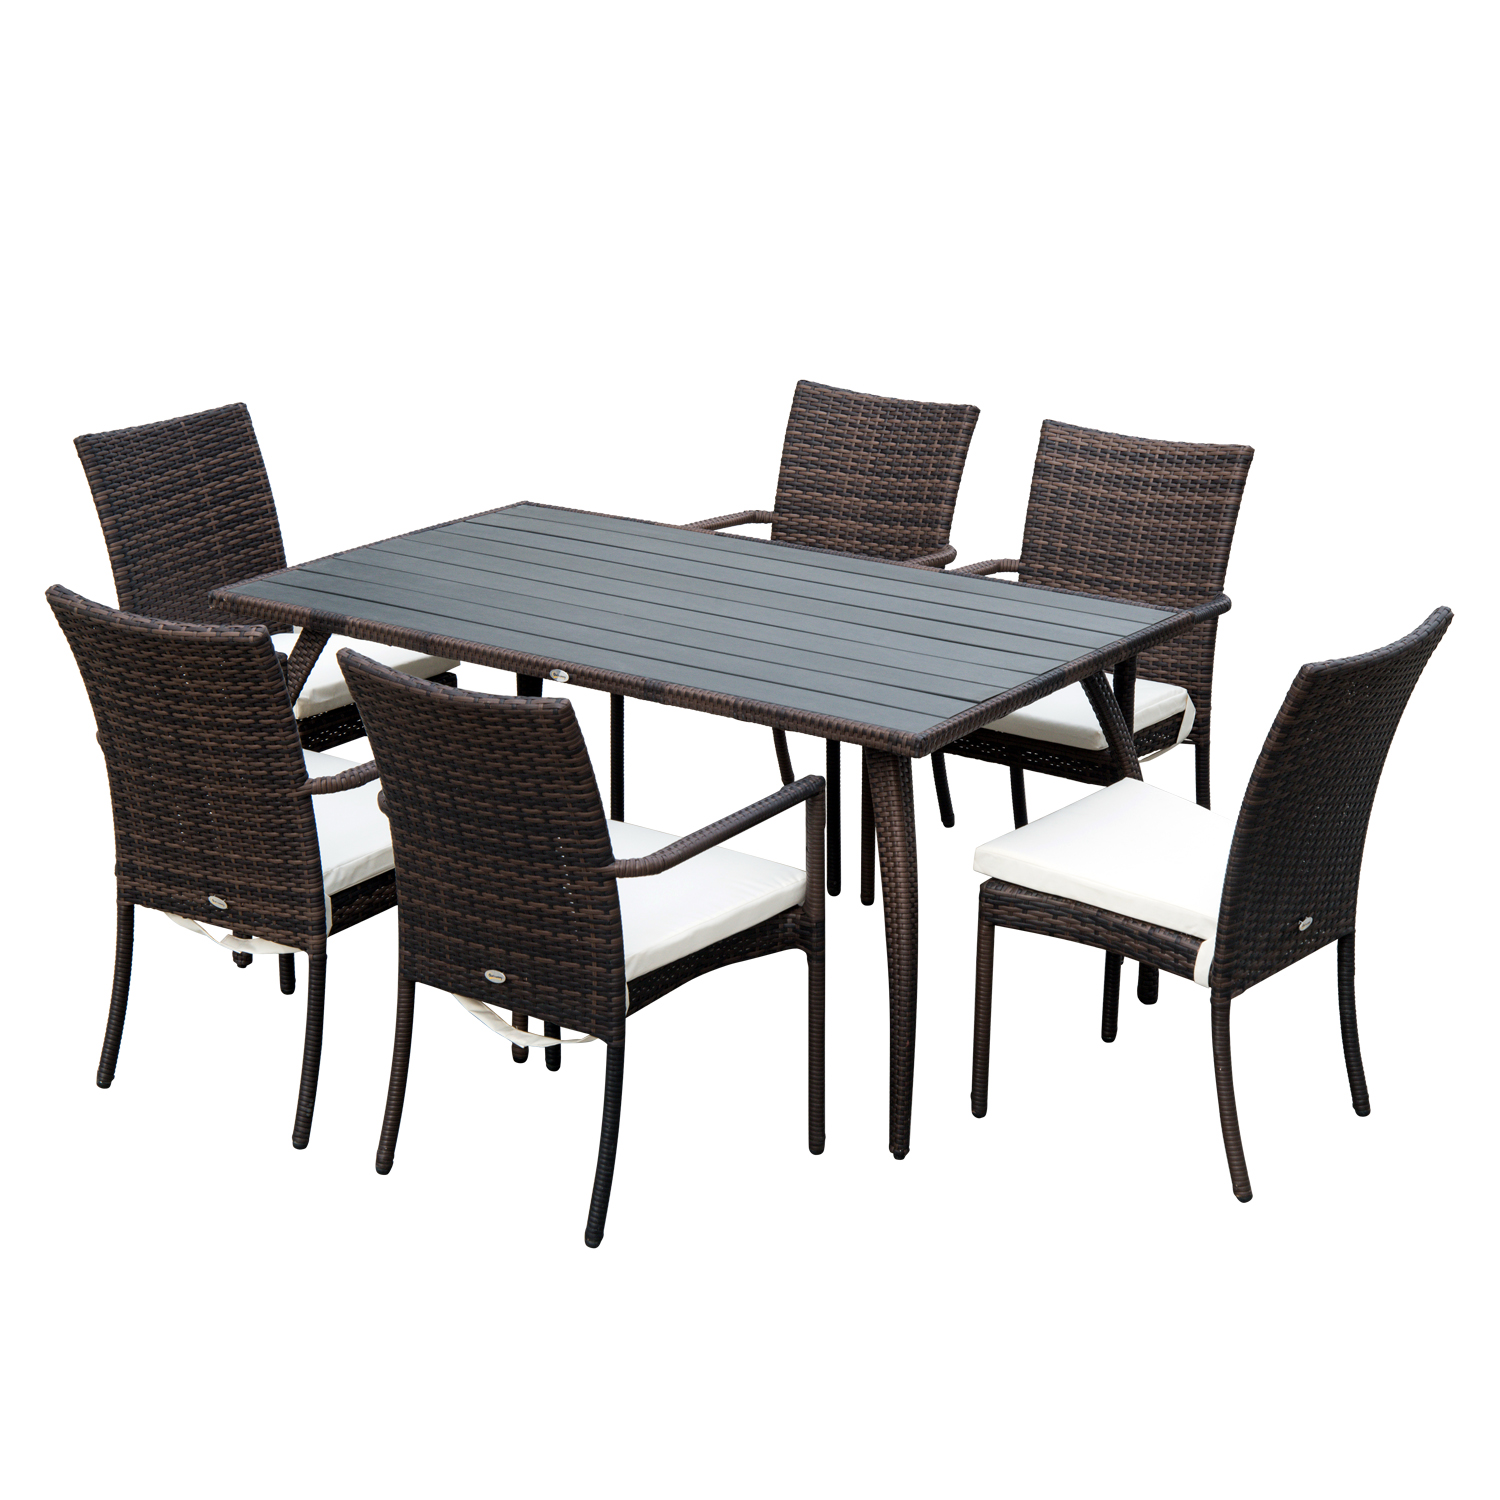 Image of £259.99 Outsunny 7 PC Rattan Dining Set-Brown/Cream White / Outsuny 7PC Set | 6 Wicker Weave Chairs & Plastic Wood Top Table Seater Outdoor Backyard Garden Furniture - Brown Pieces Chair Cushion 861-025 5056029886571